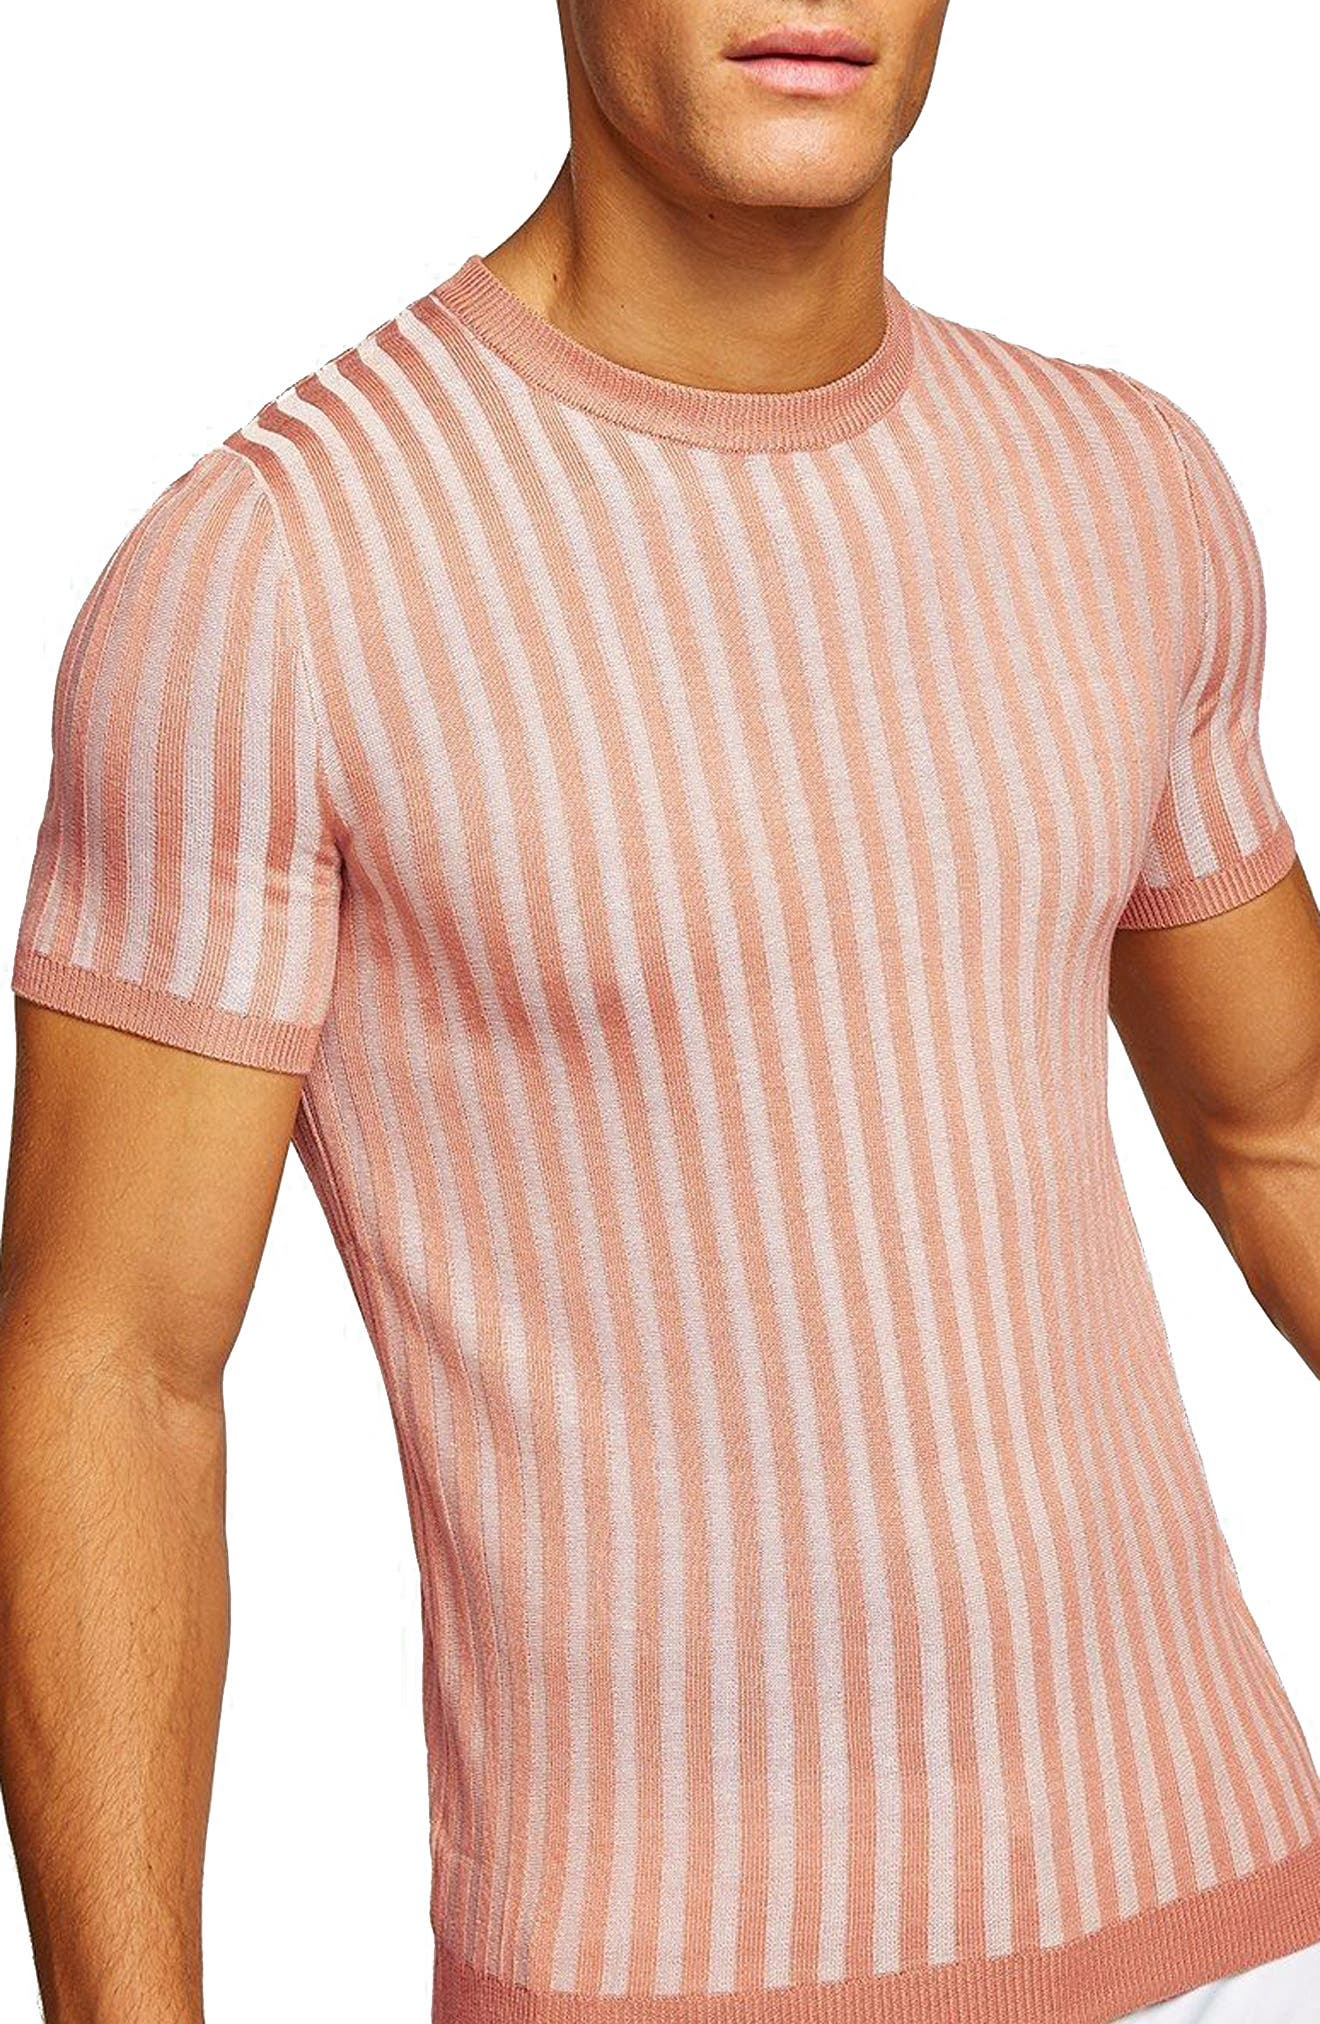 Muscle Fit Ribbed T-Shirt,                         Main,                         color, 650